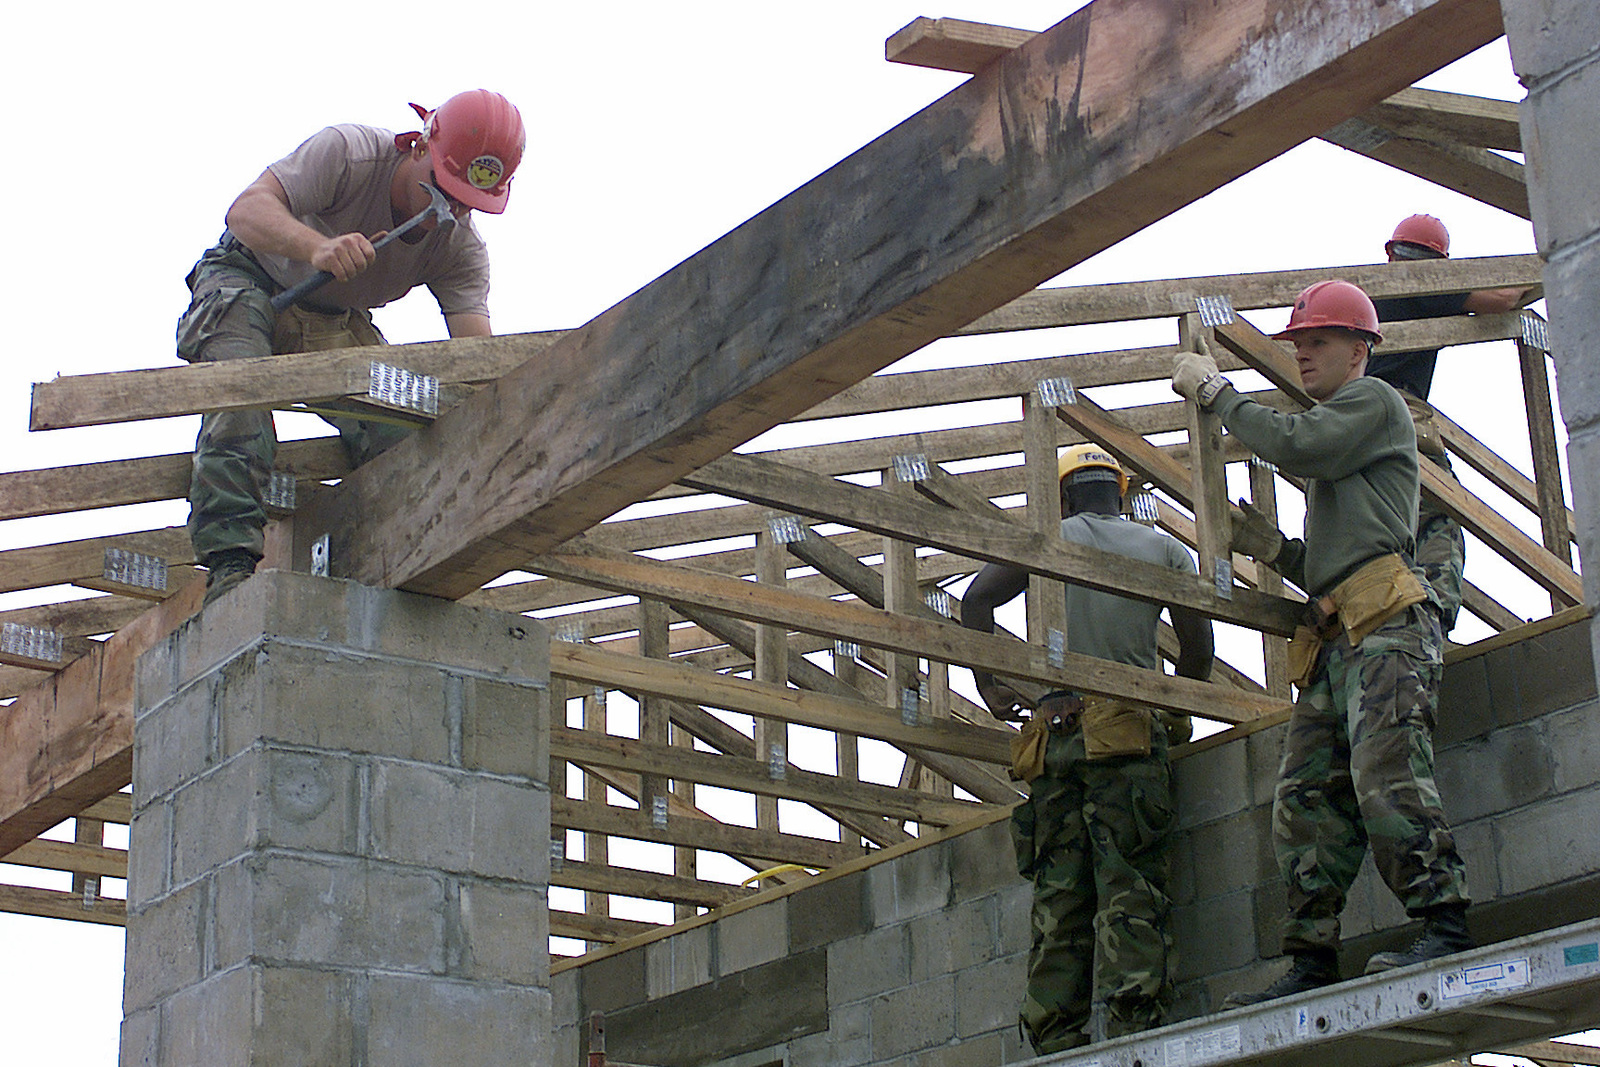 Team New Horizons working together in a multinational effort to build the roof at Las Palmas School, Paraguay, during Exercise NEW HORIZONS. Combined Task Force Guarani Springs conducts engineer and medical operations in Paraguay, enabling joint training. The task force will renovate, construct and improve the infrastructure of four schools, four water wells, two medical clinics, and conduct multiple Medical Readiness Training Exercises (MEDRETES), and Veterinarian Readiness Training Exercises (VETRETES) as agreed to by the government of Paraguay